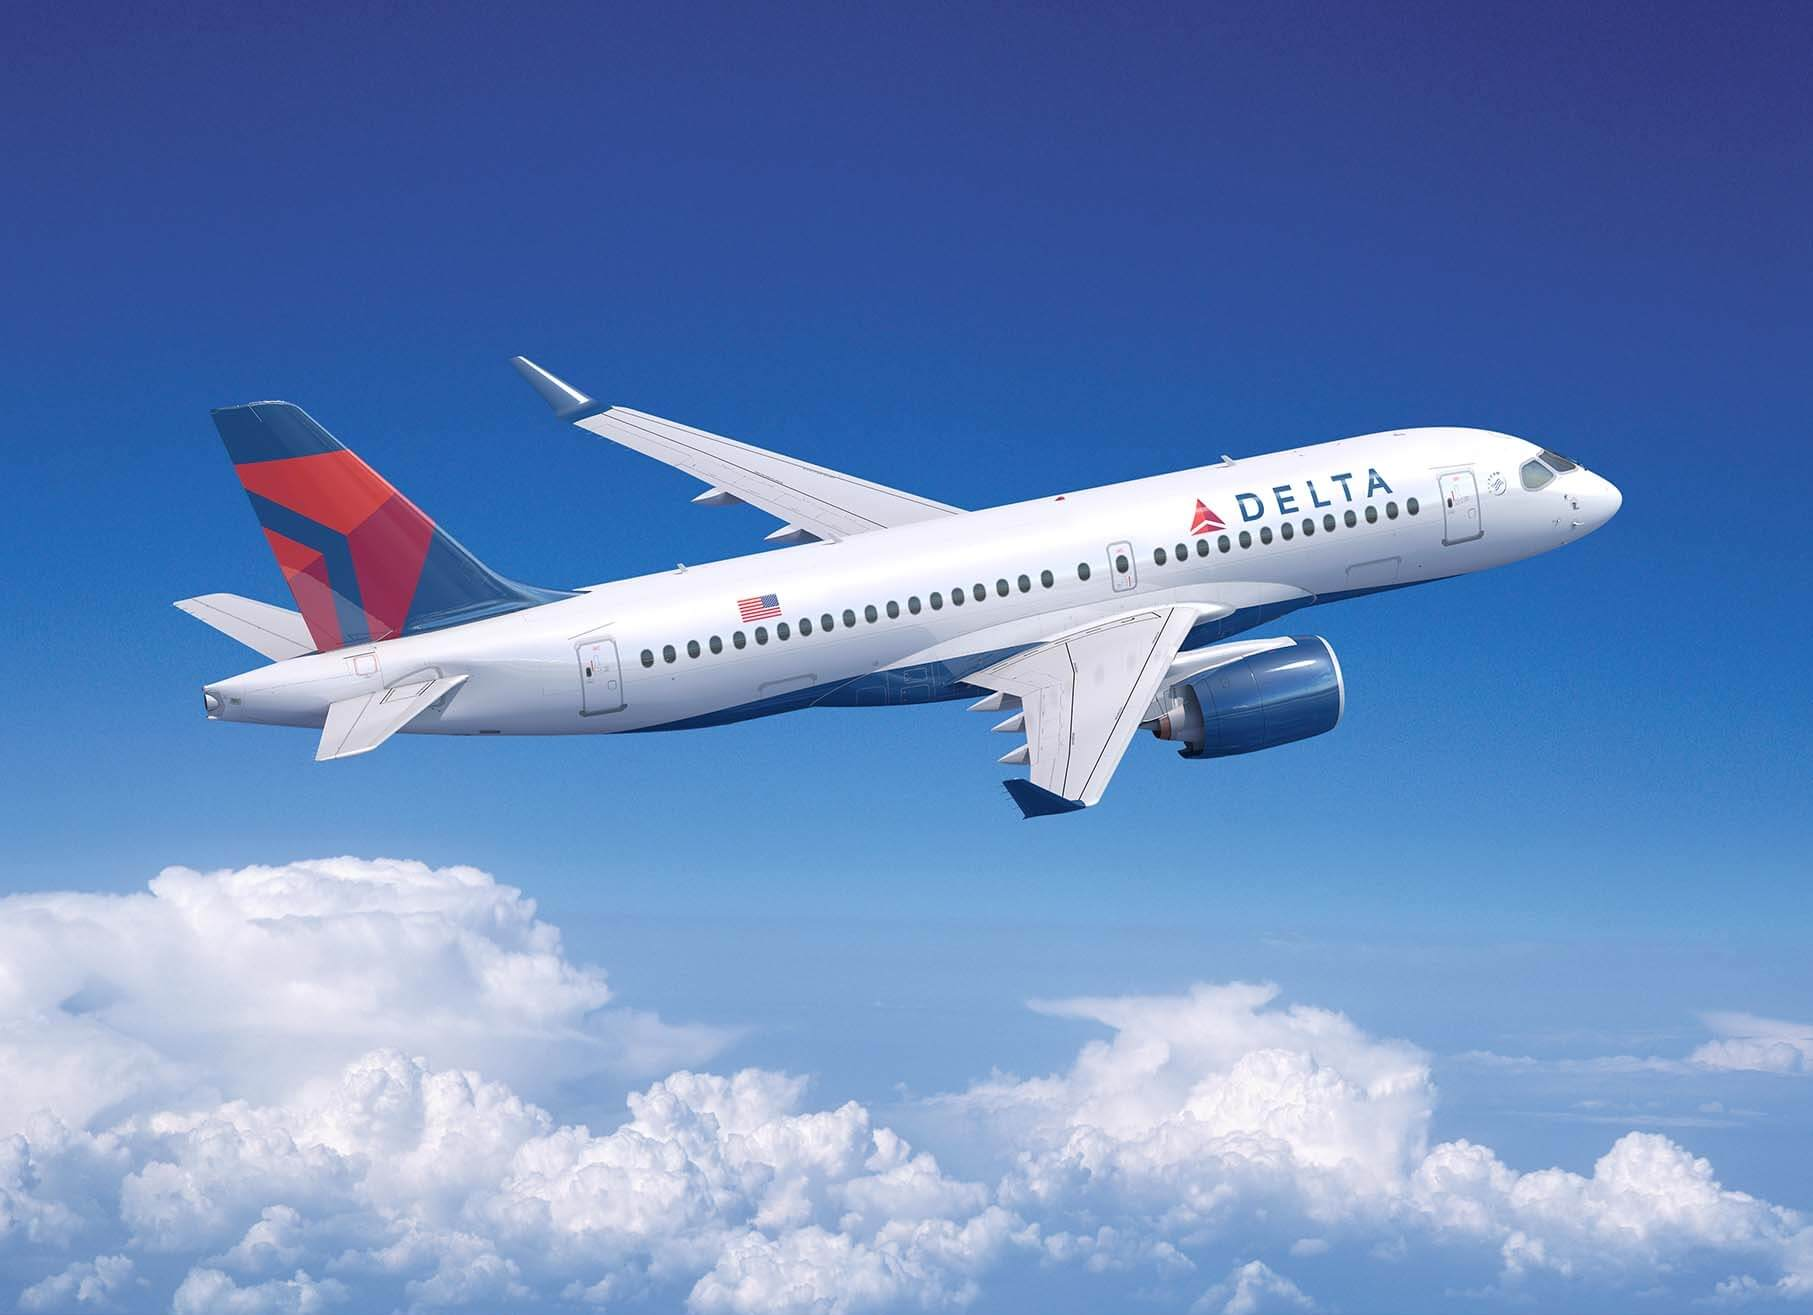 Delta Air Lines orders five additional Airbus A220 aircraft